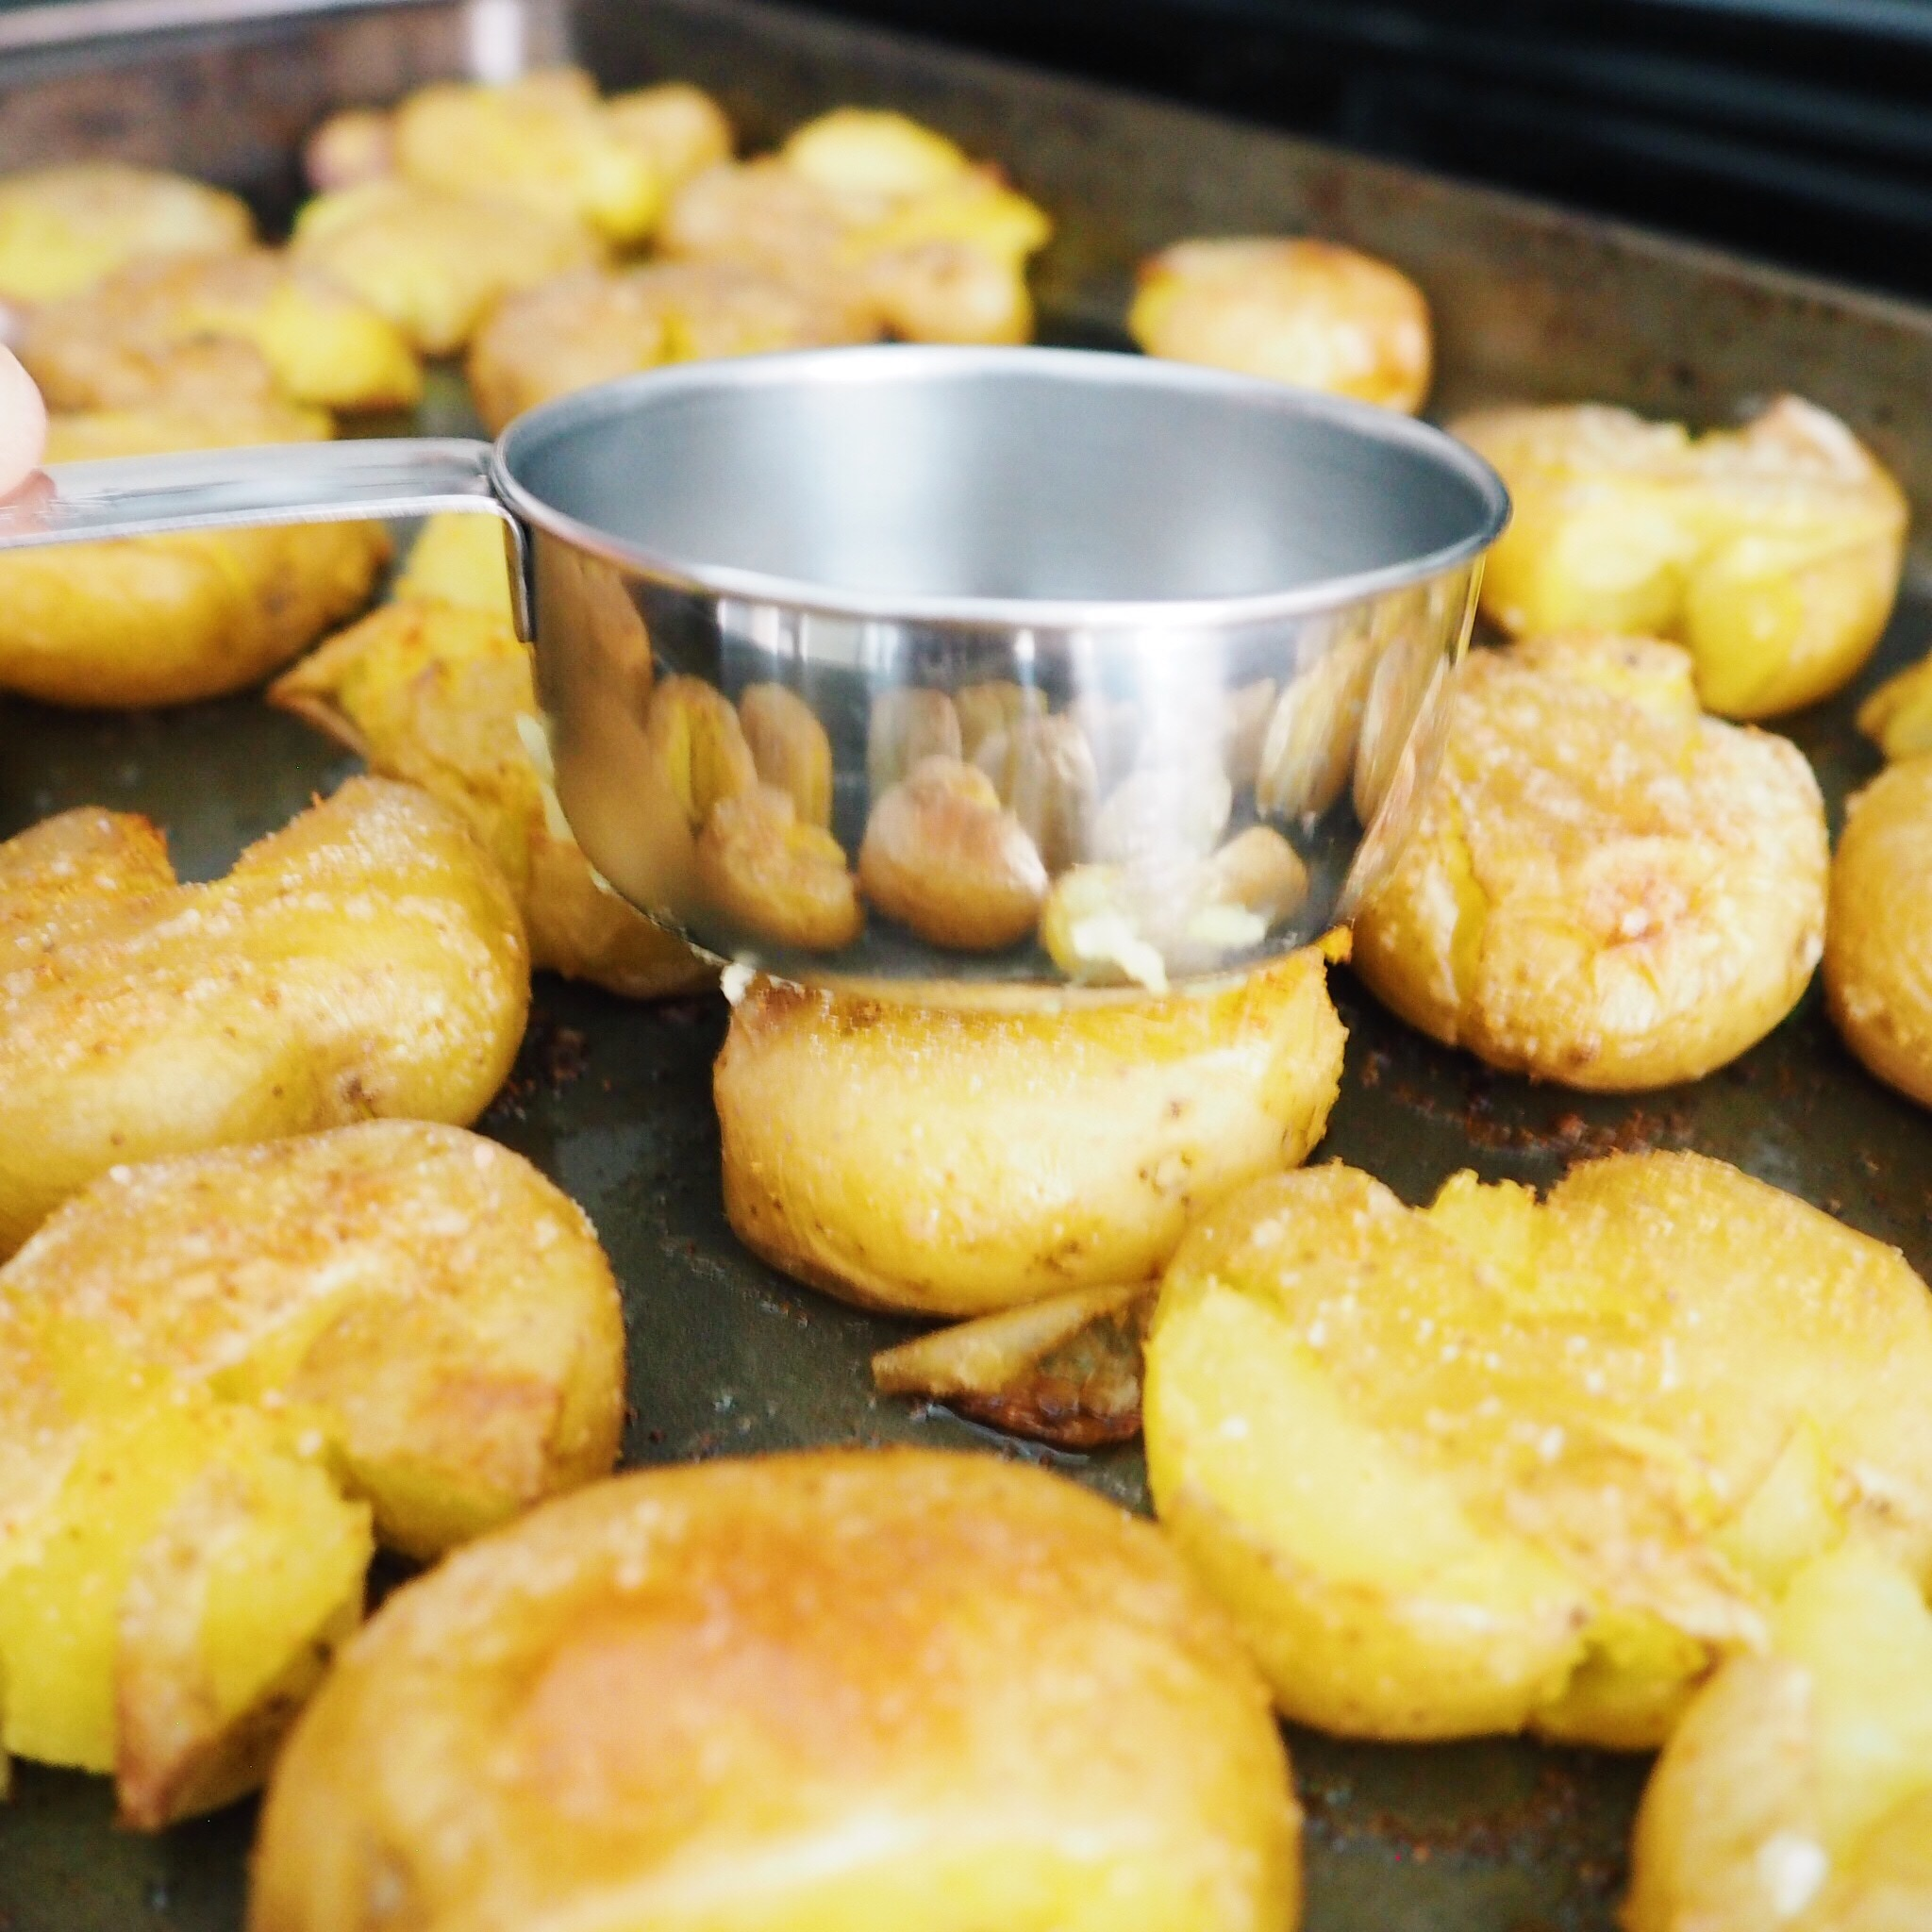 Step 10 - Flatten the potatoes again with measuring cup, creating more surface area for extra crisp. Bake for another 10 more minutes.